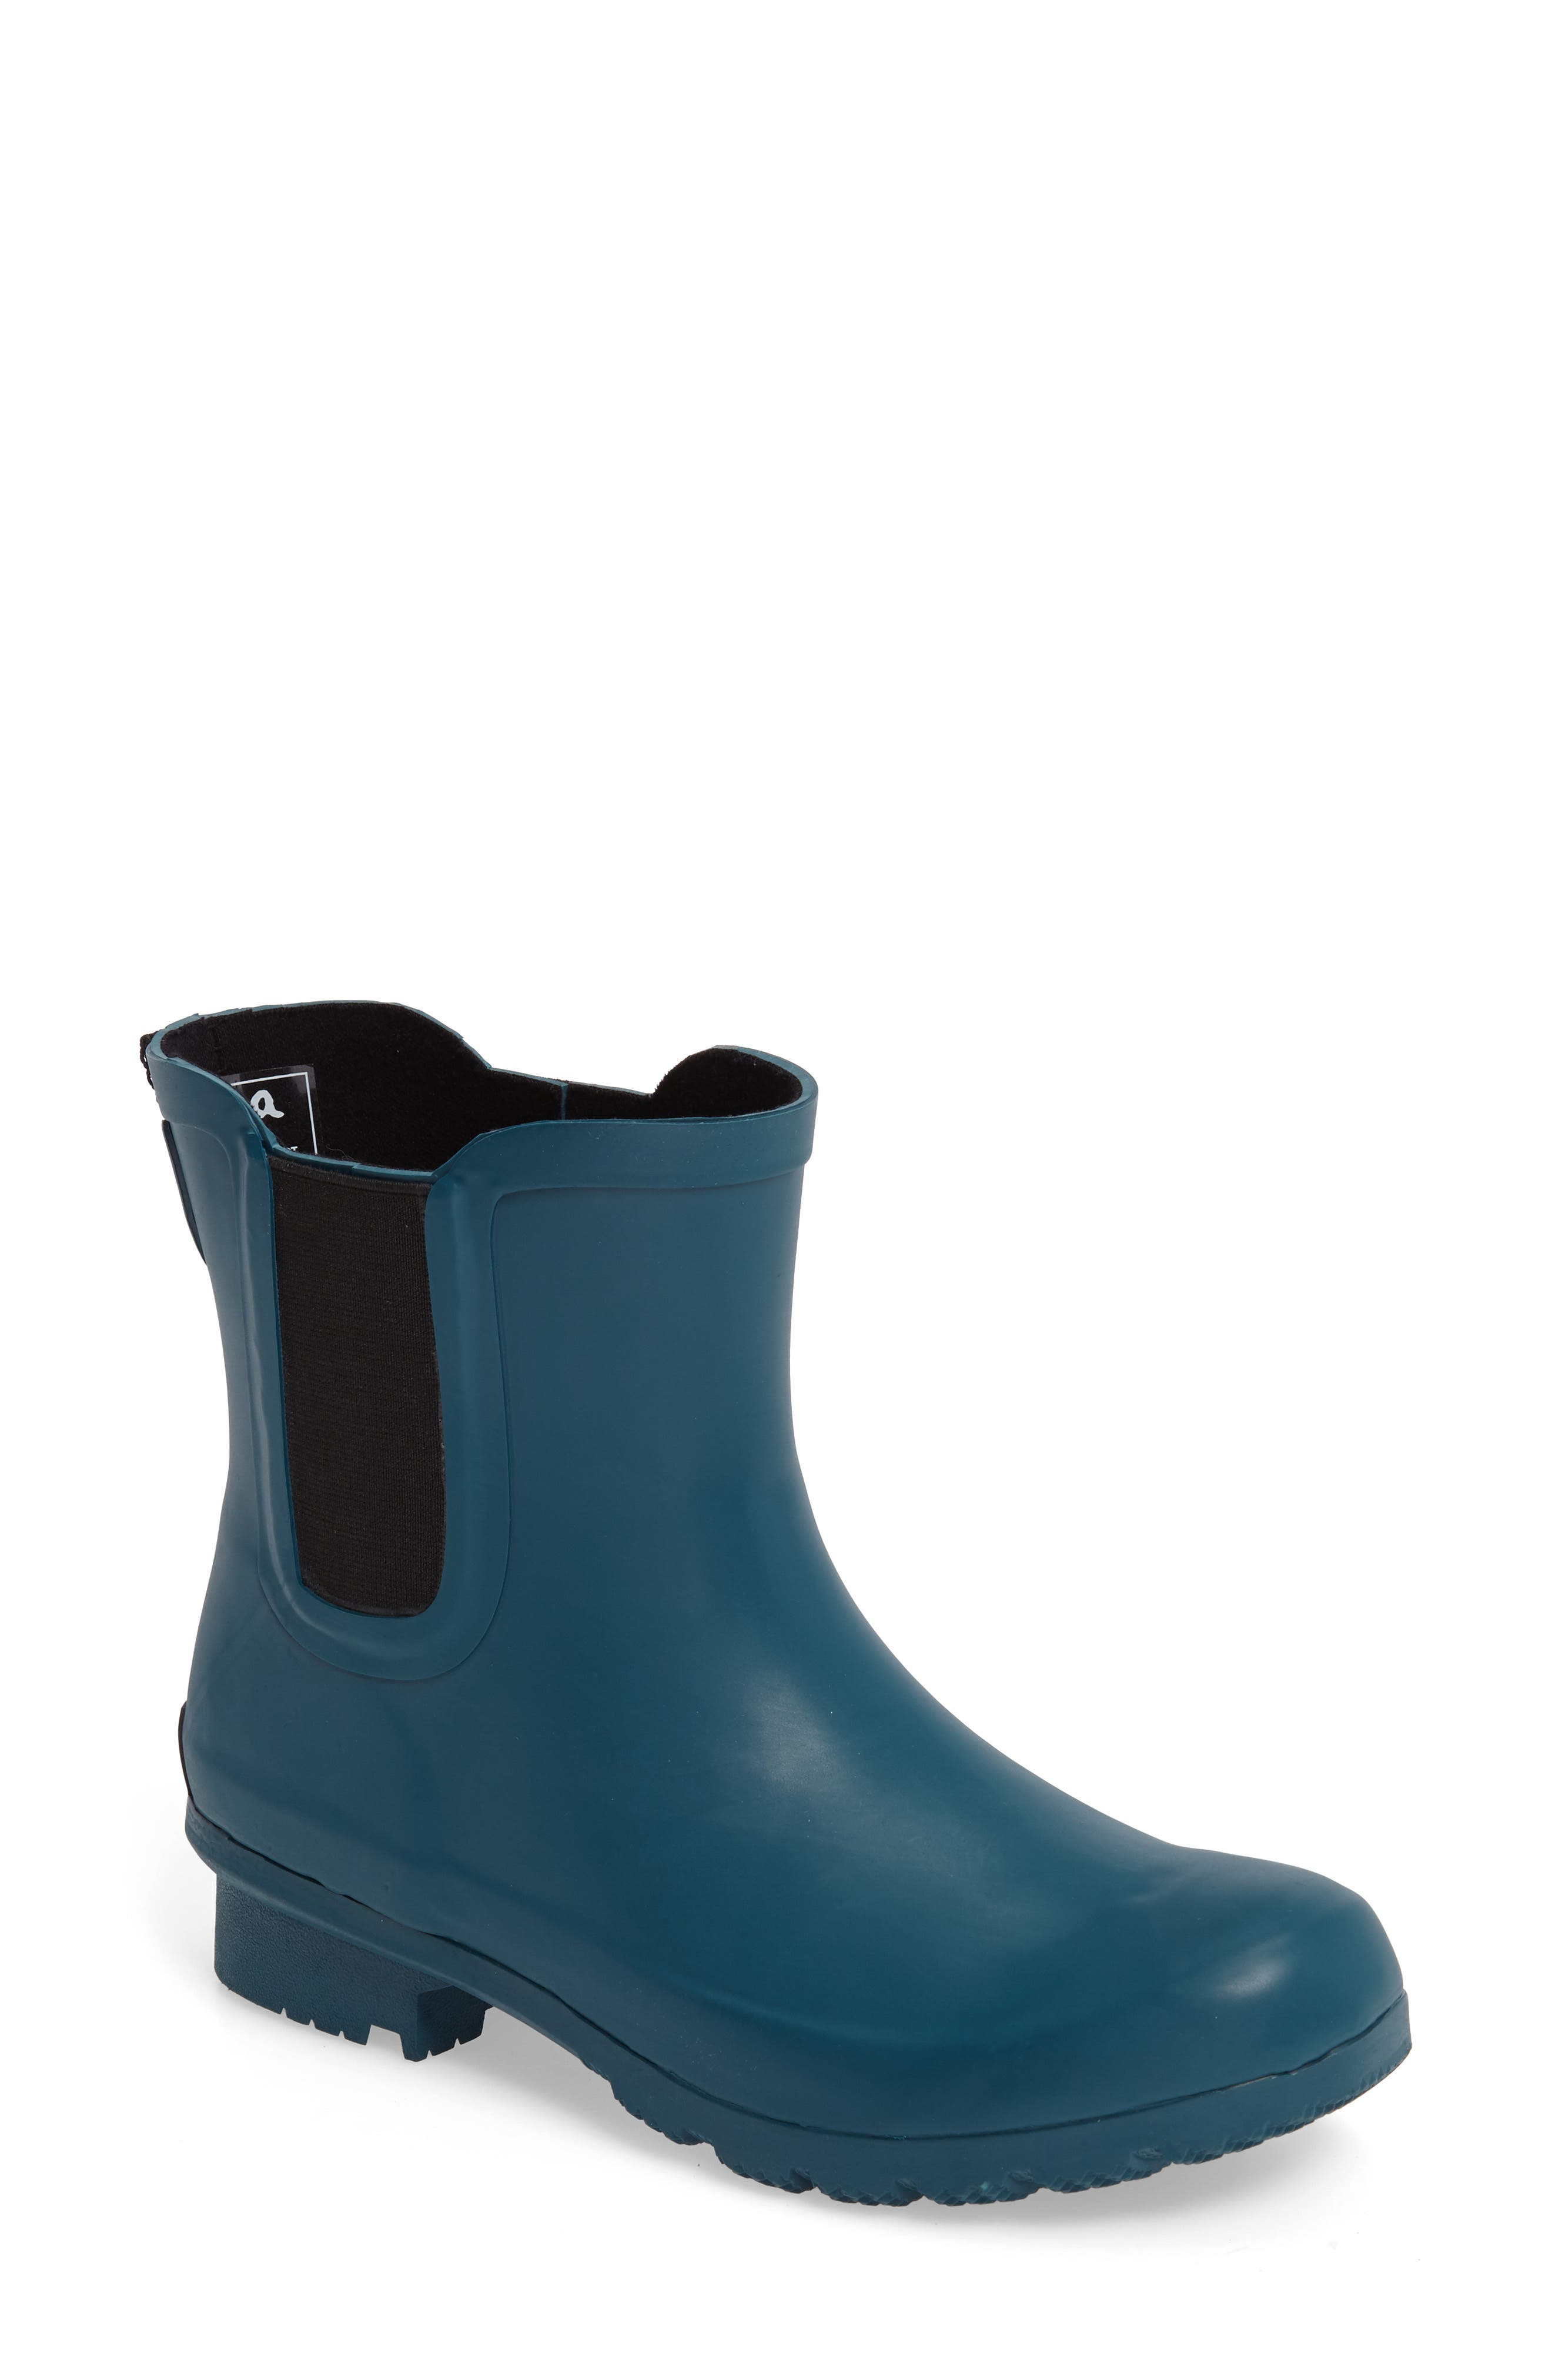 Alternate Image 1 Selected - roma Waterproof Chelsea Boot (Women)